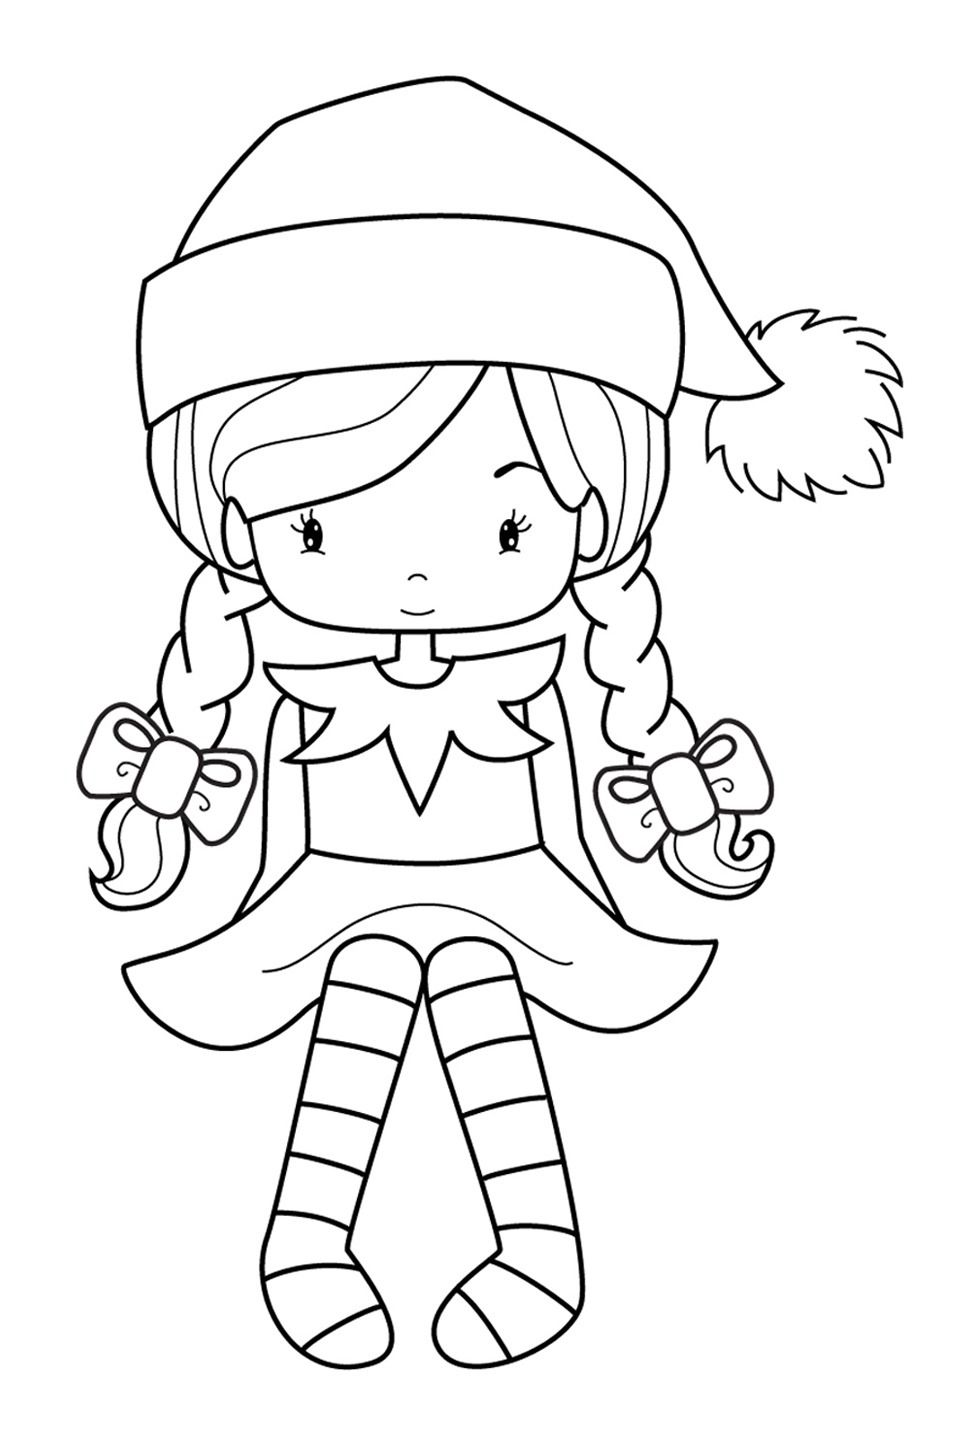 Cute Elf Coloring Pages Printable Christmas Coloring Pages Christmas Coloring Pages Coloring Pages